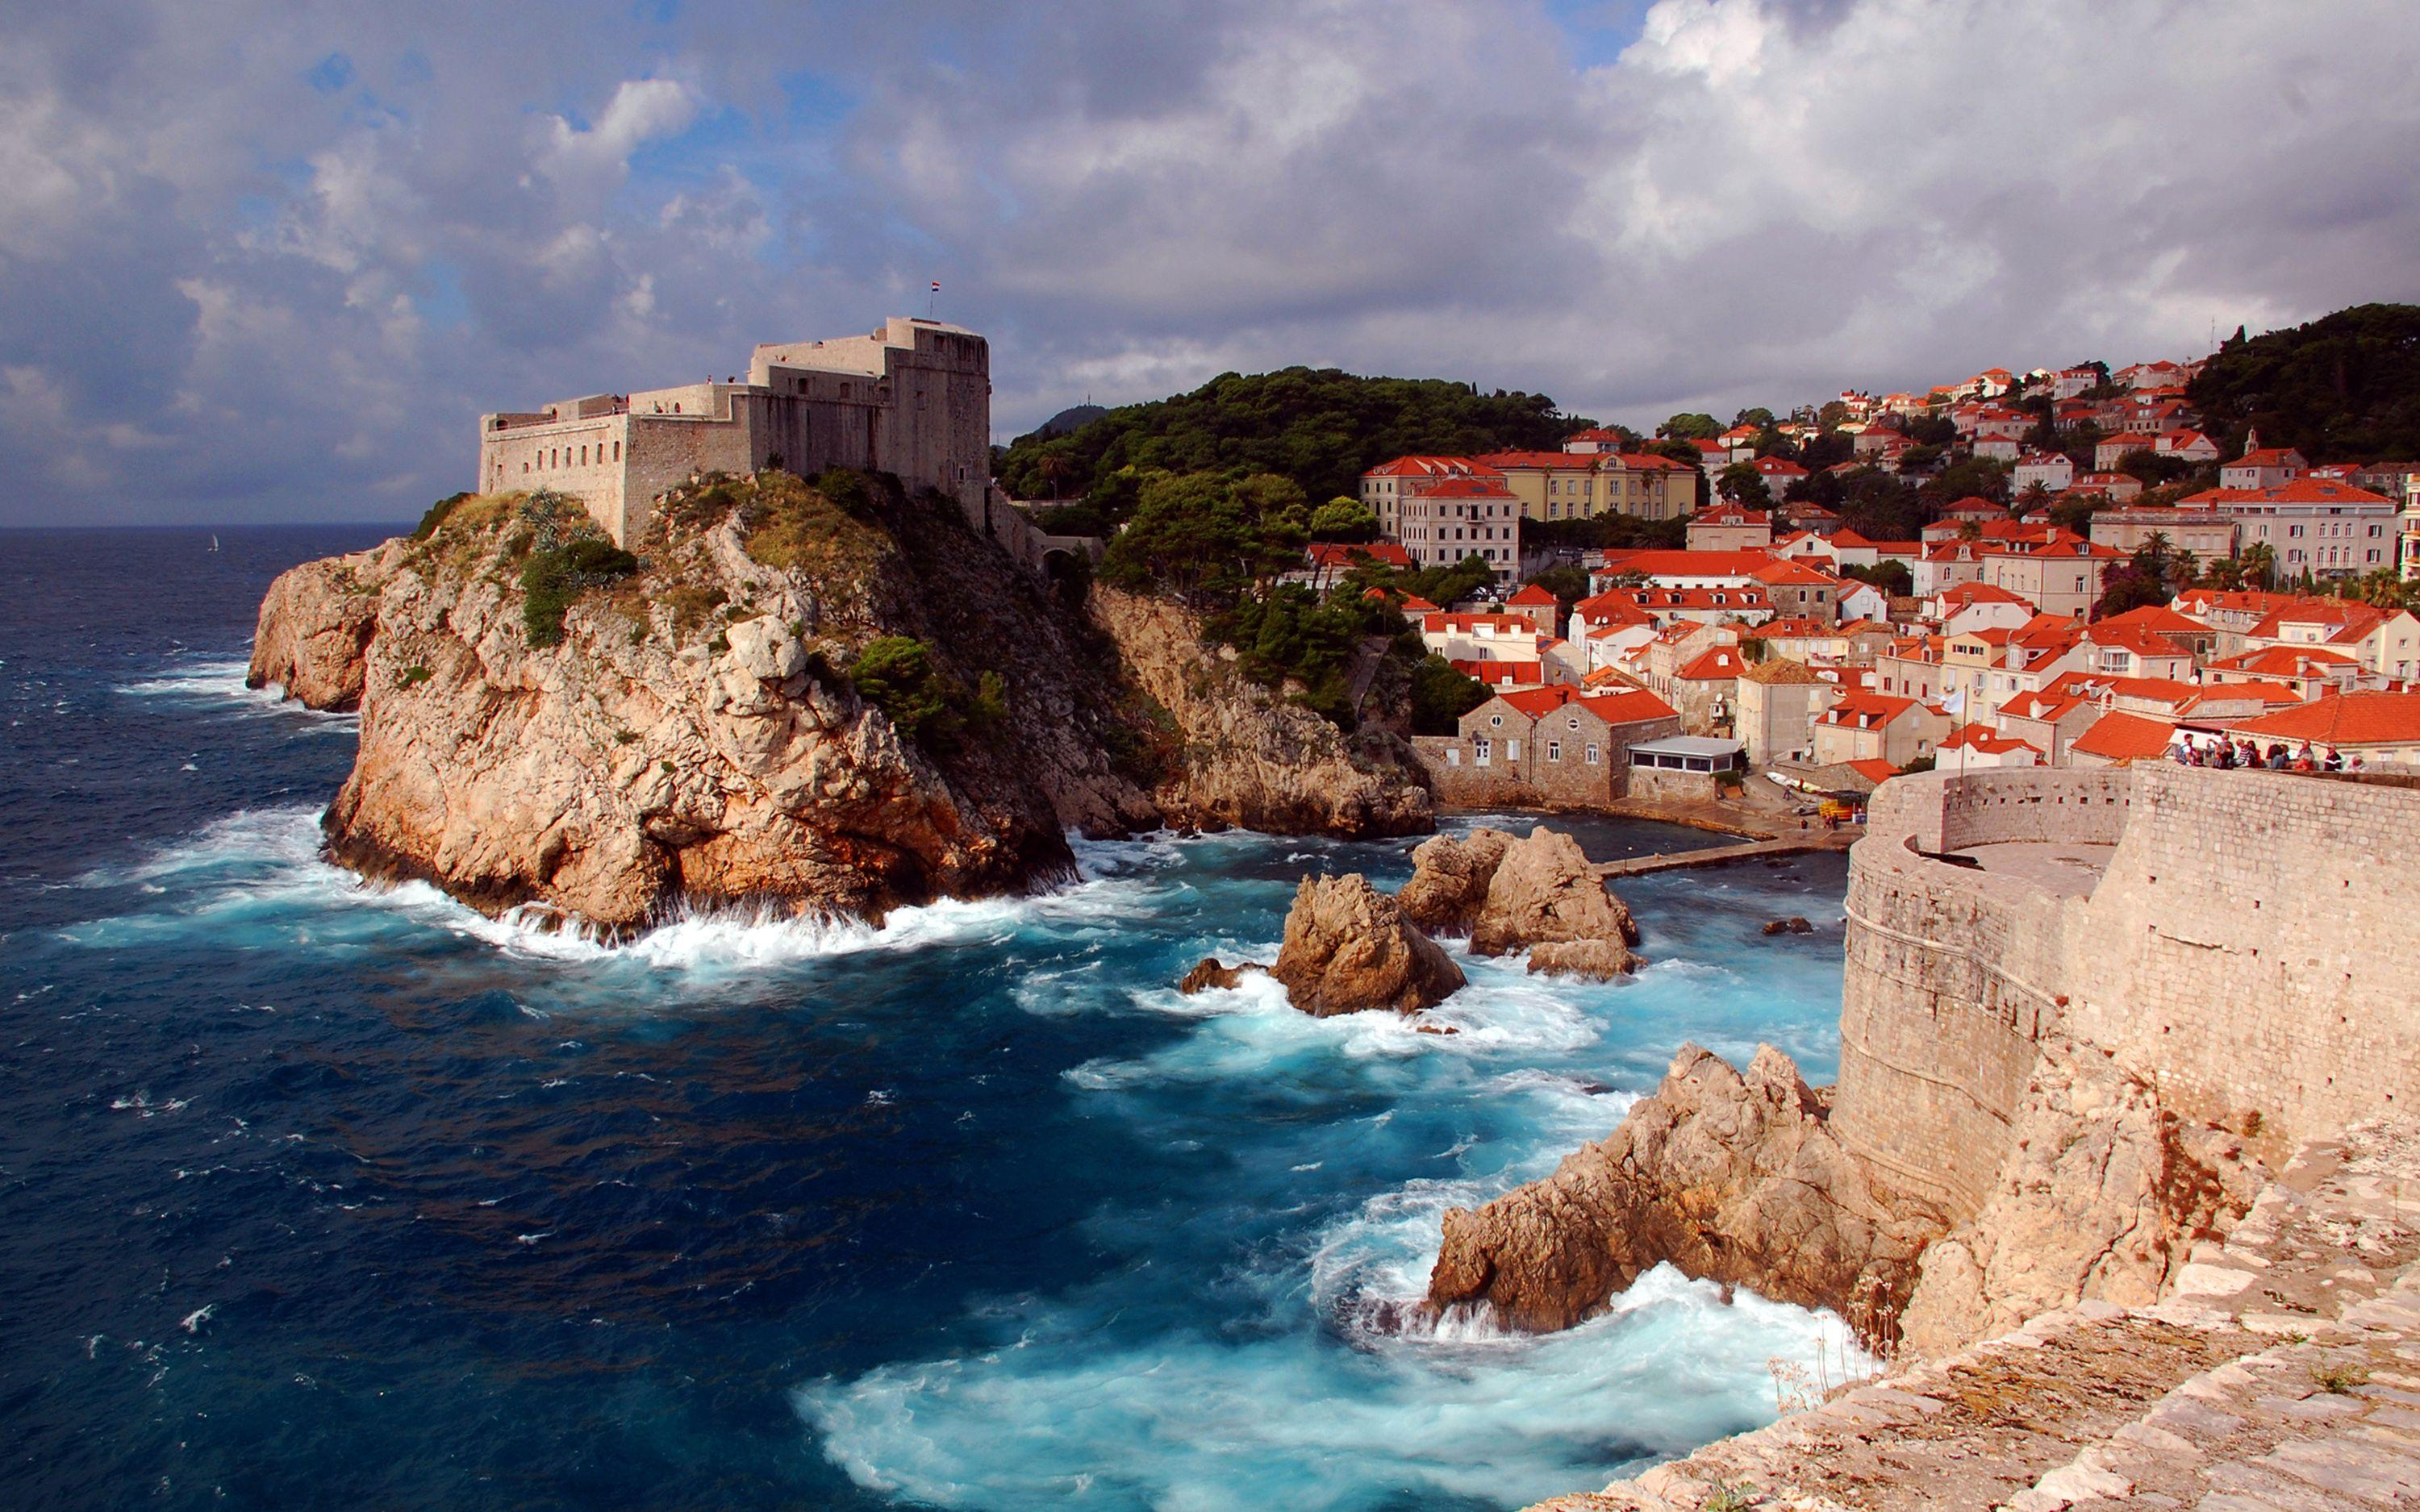 Dubrovnik, A Medieval Fortress Croatia Desktop Wallpapers Hd